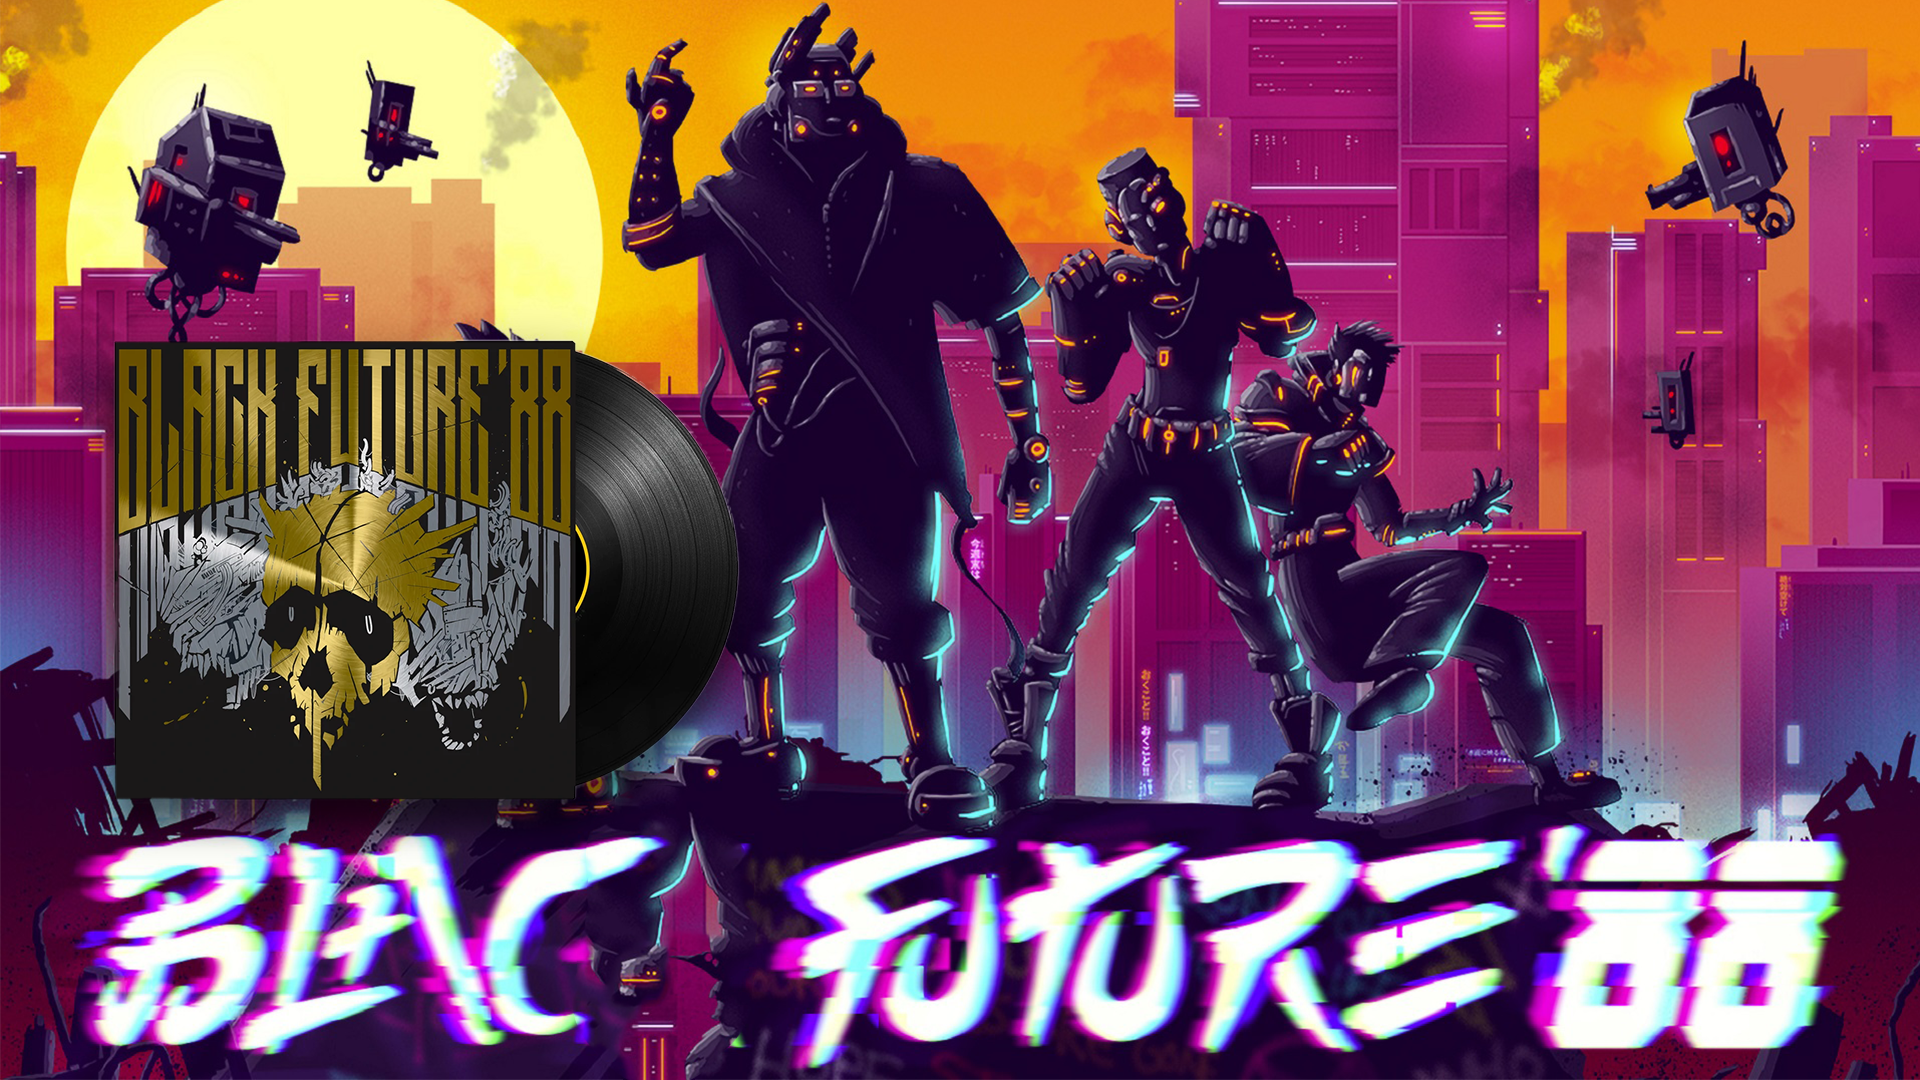 Blackfuture-cover-justforgames